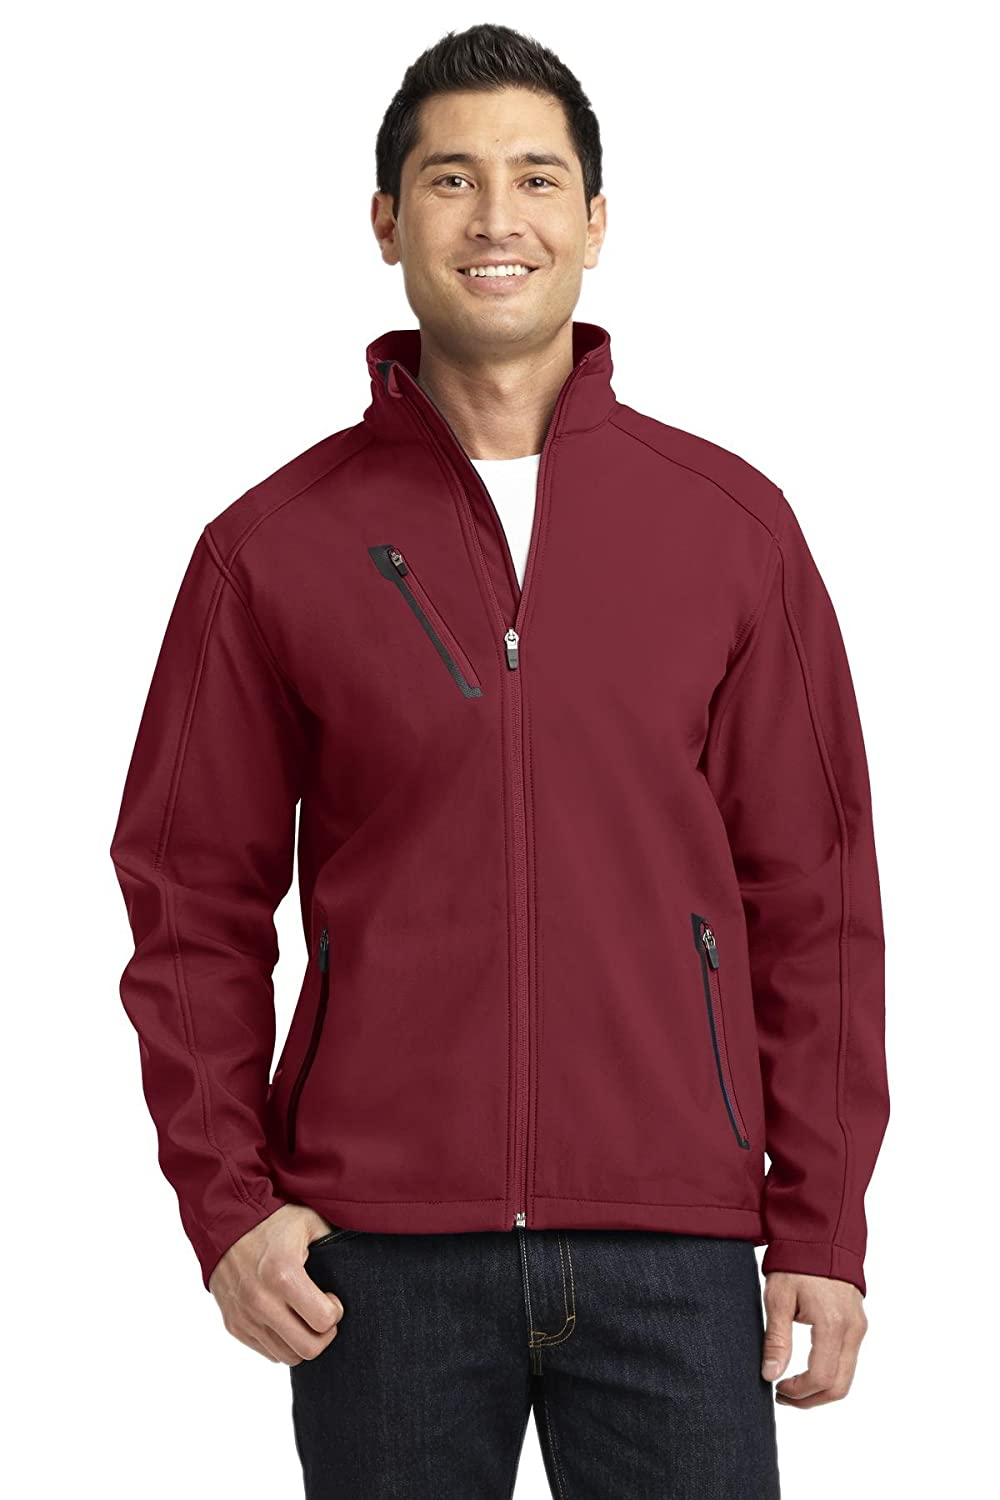 Port Authority Mens Welded Soft Shell Jacket